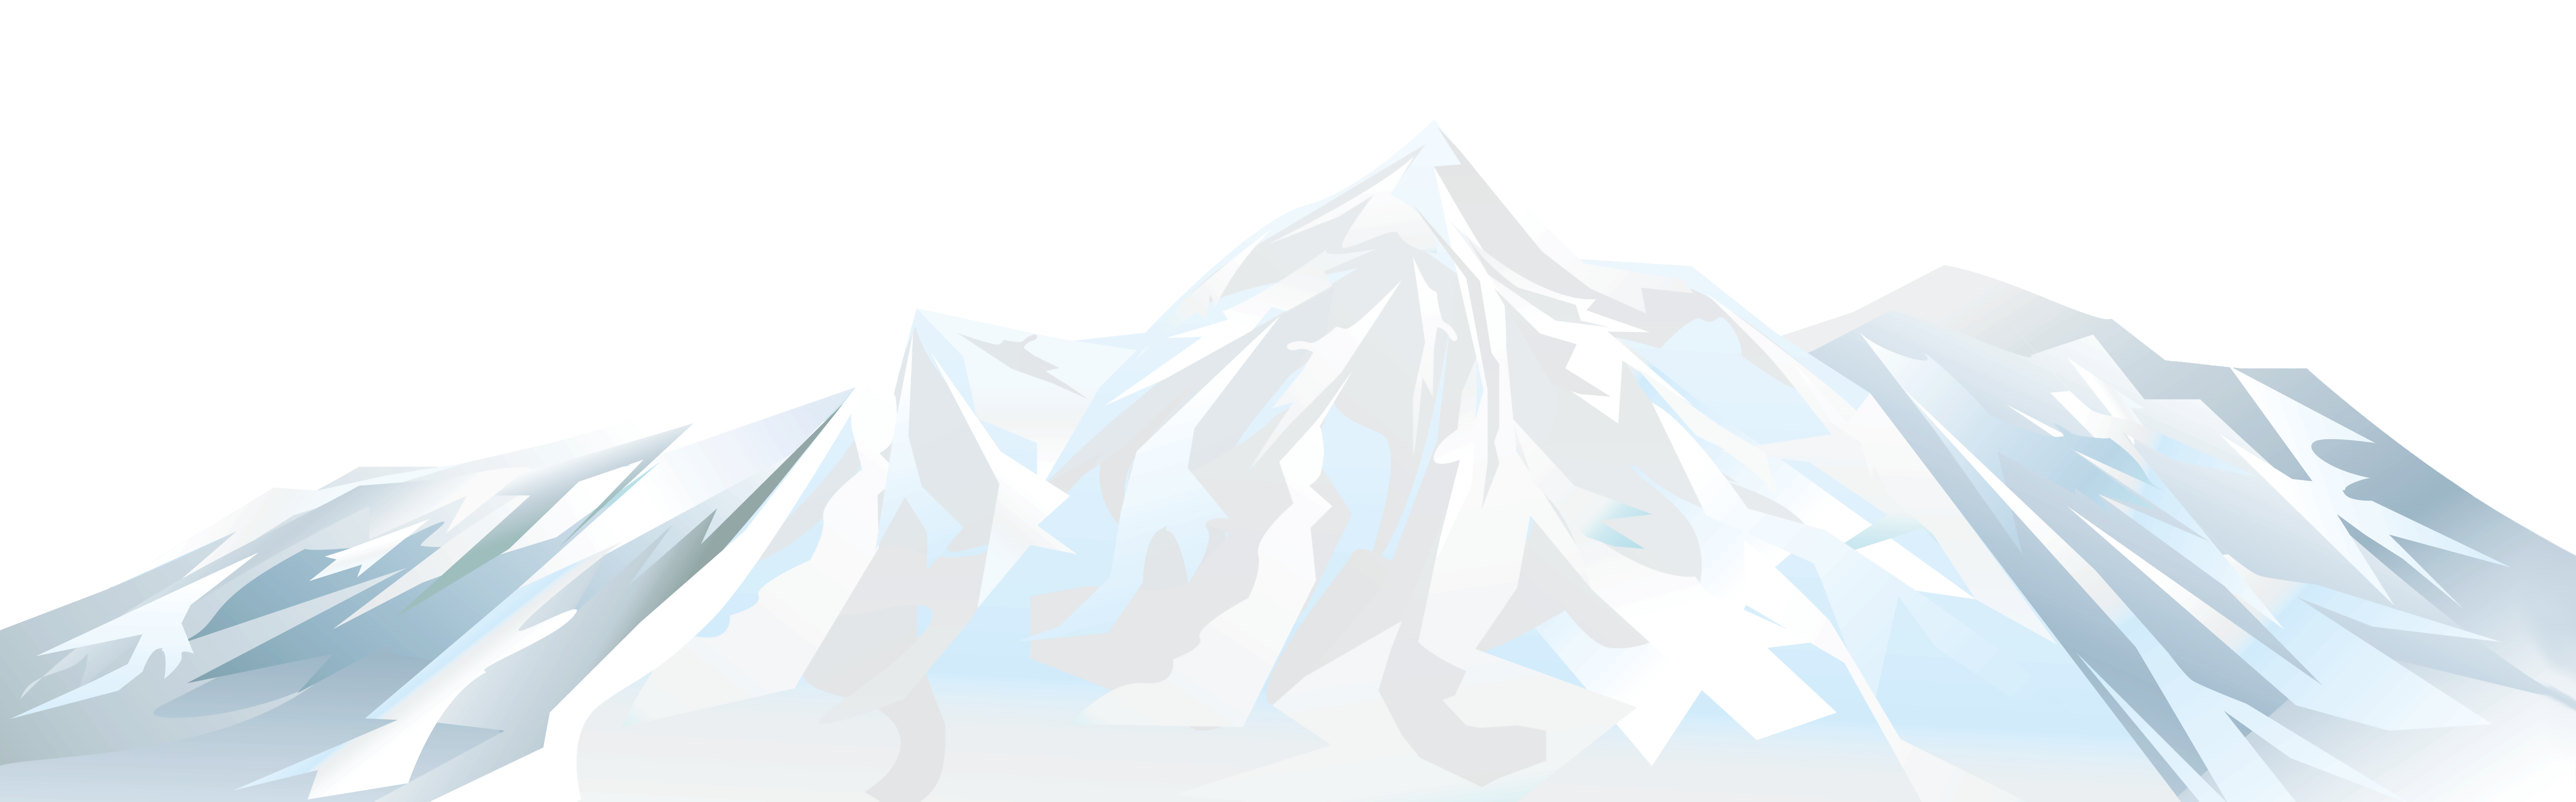 Winter Snowy Mountain PNG Clipart Image.